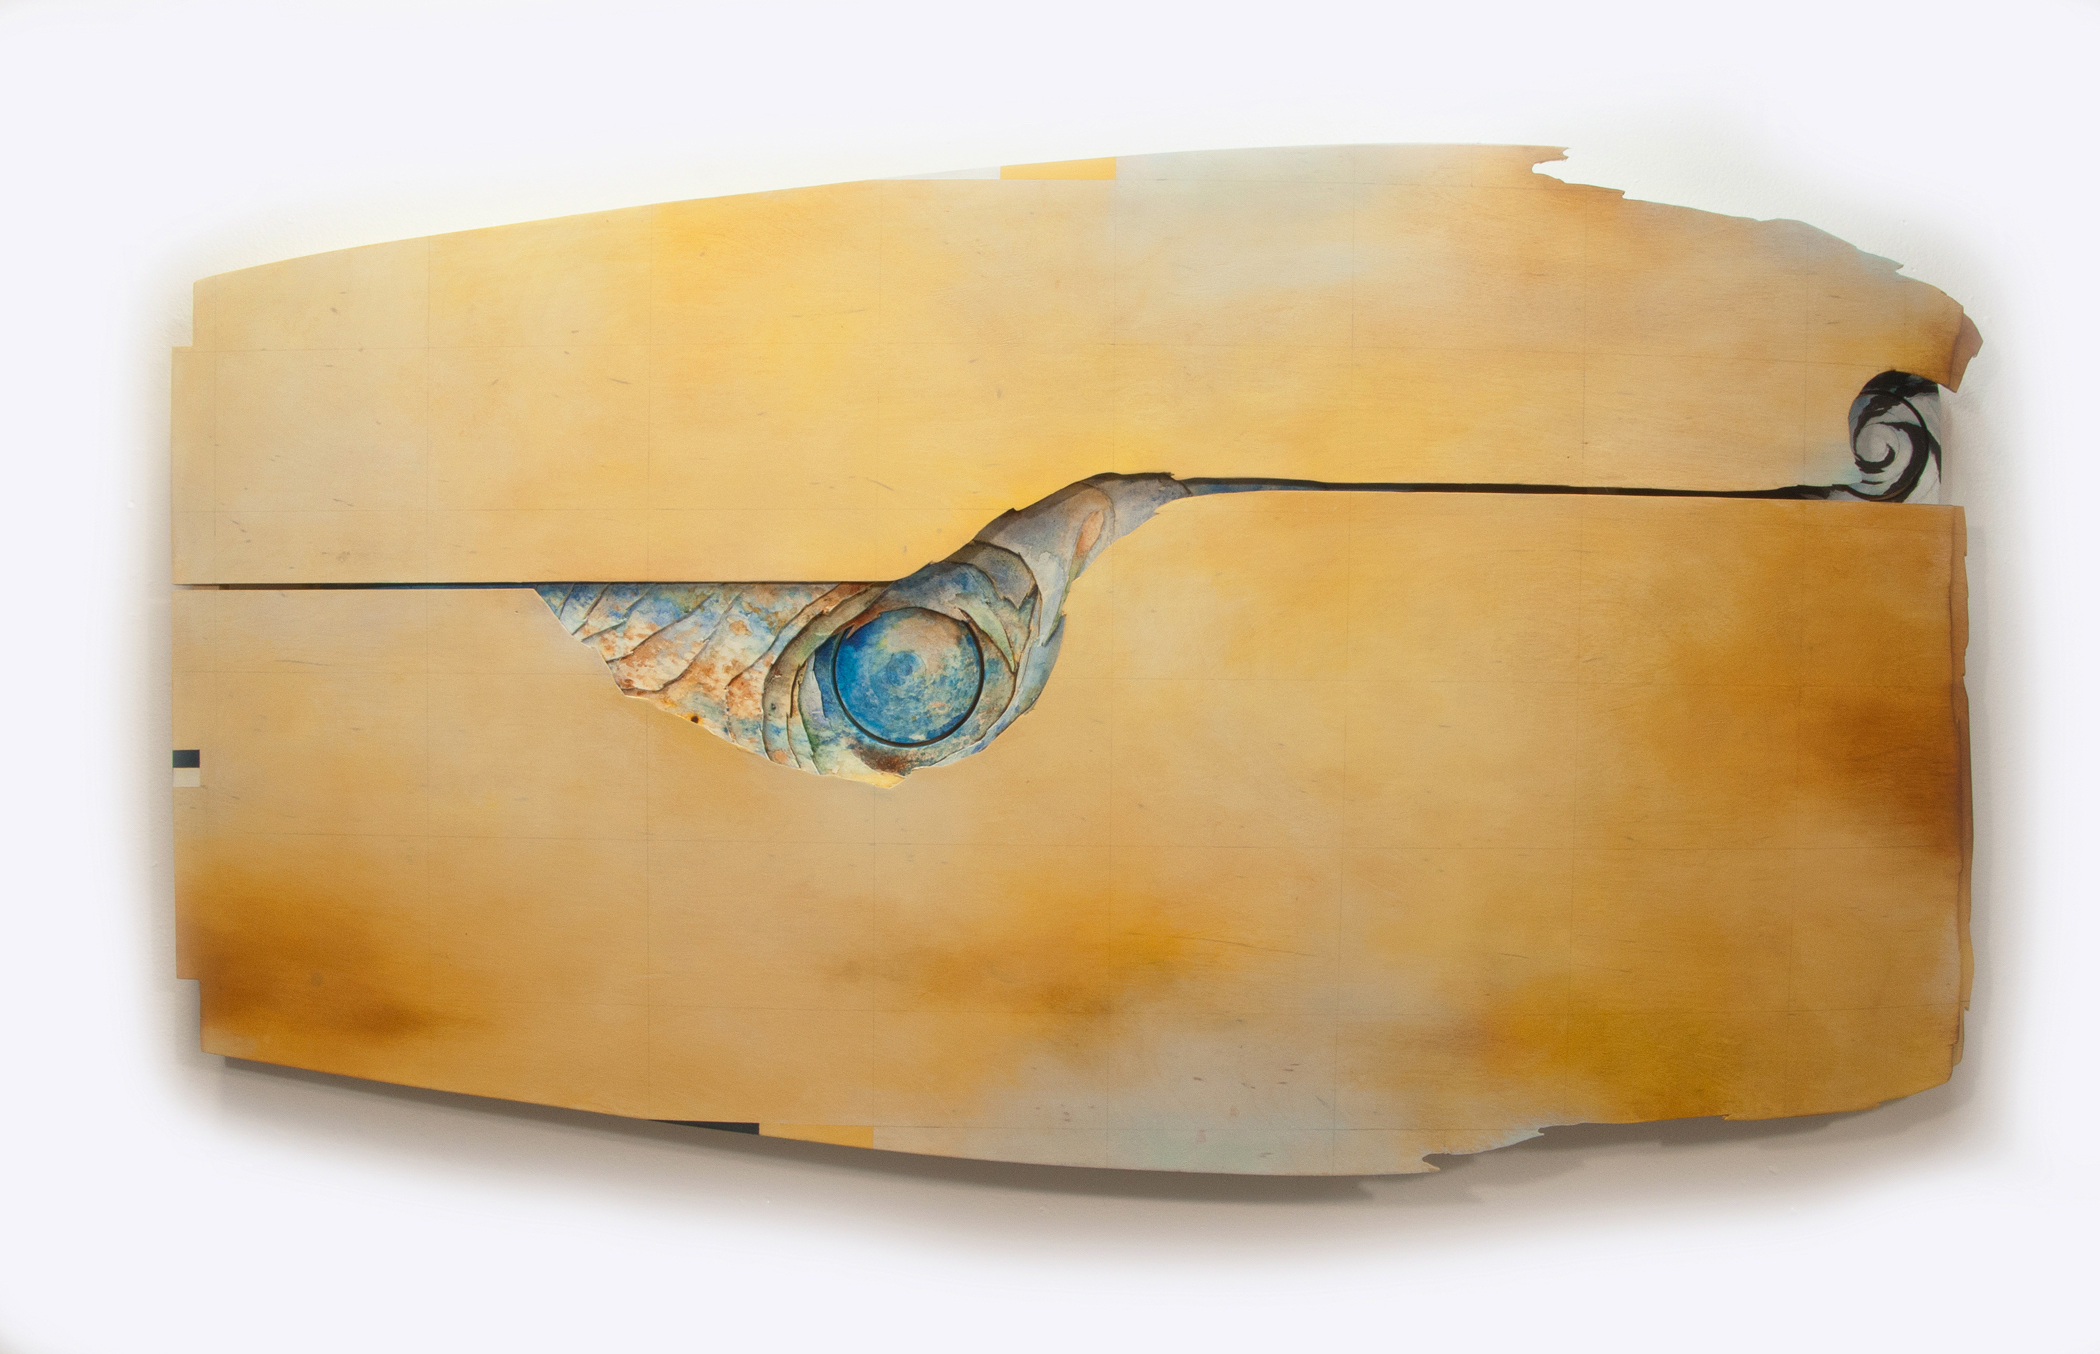 Kolman & Pryor Gallery_Cameron Zebrun_Amber A_2018_oil and watercolor on wood_27 x 49 x 5 inches_�5700_.jpg